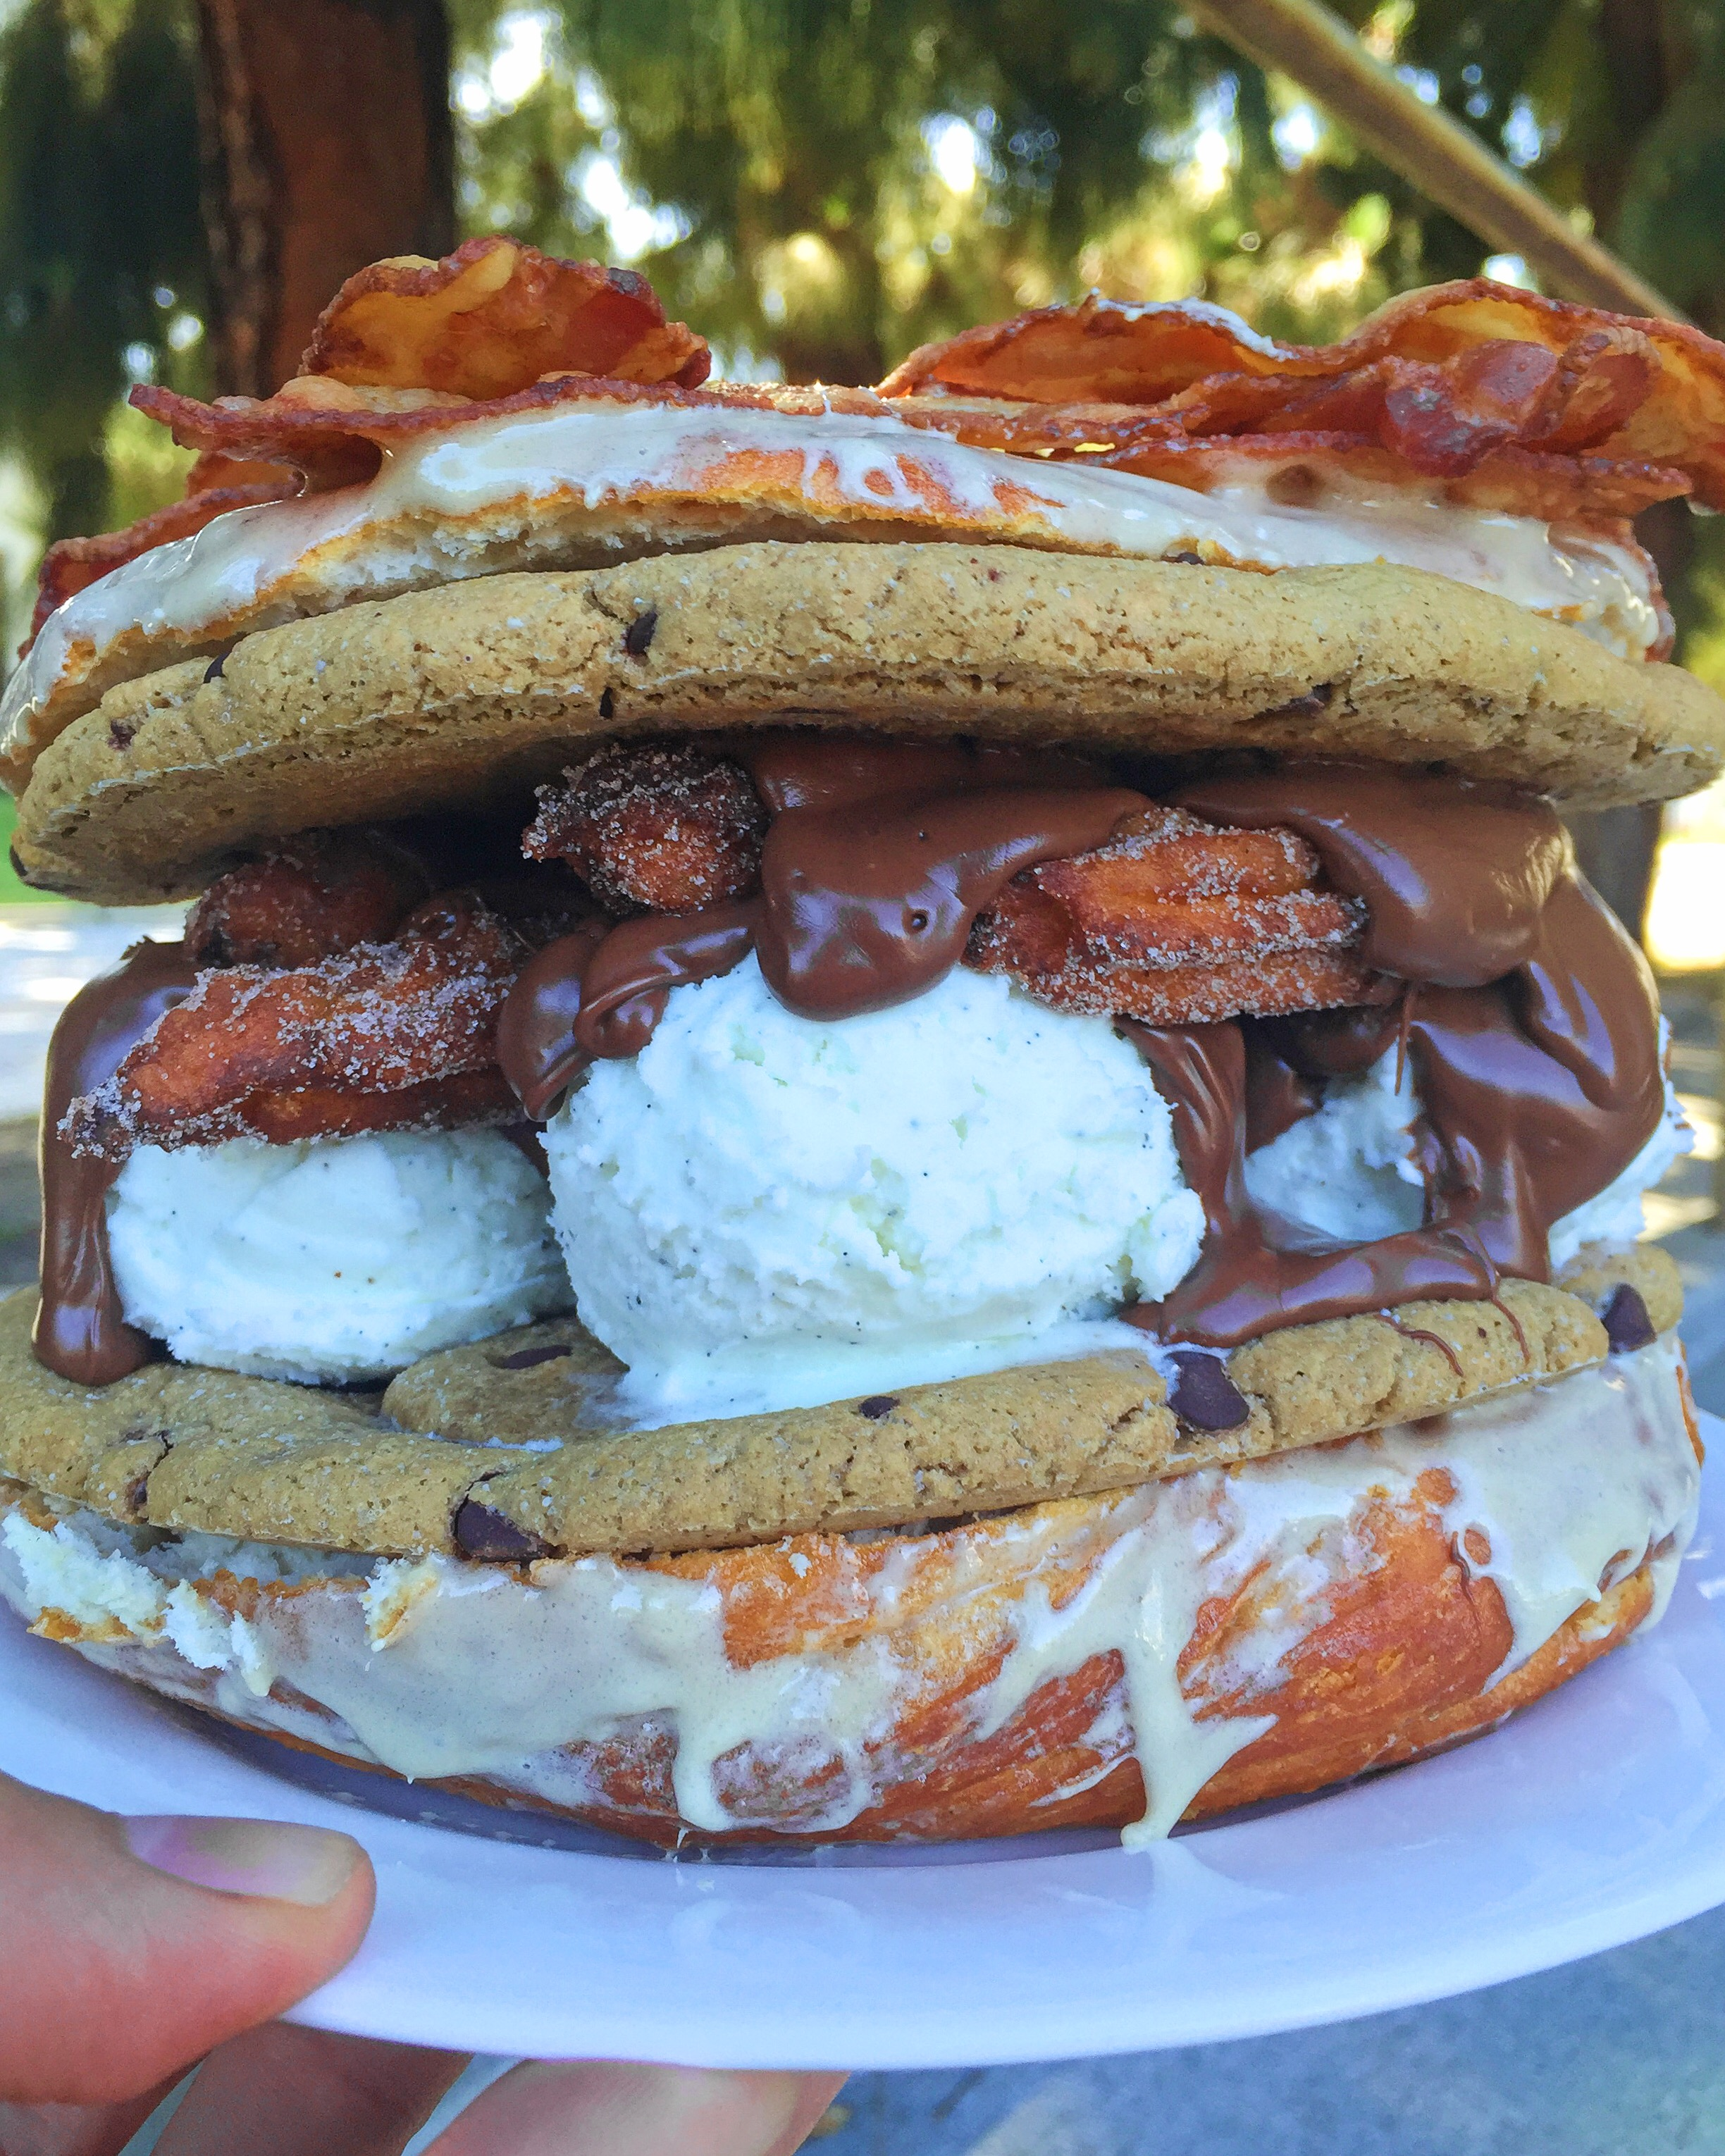 Peachy Epic Churro Cookie Donut Ice Cream Sandwich Epic Churro Cookie Donut Ice Cream Bloq Cookie Ice Cream Sandwich Magic Kingdom Cookie Ice Cream Sandwich Sonic nice food Cookie Ice Cream Sandwich